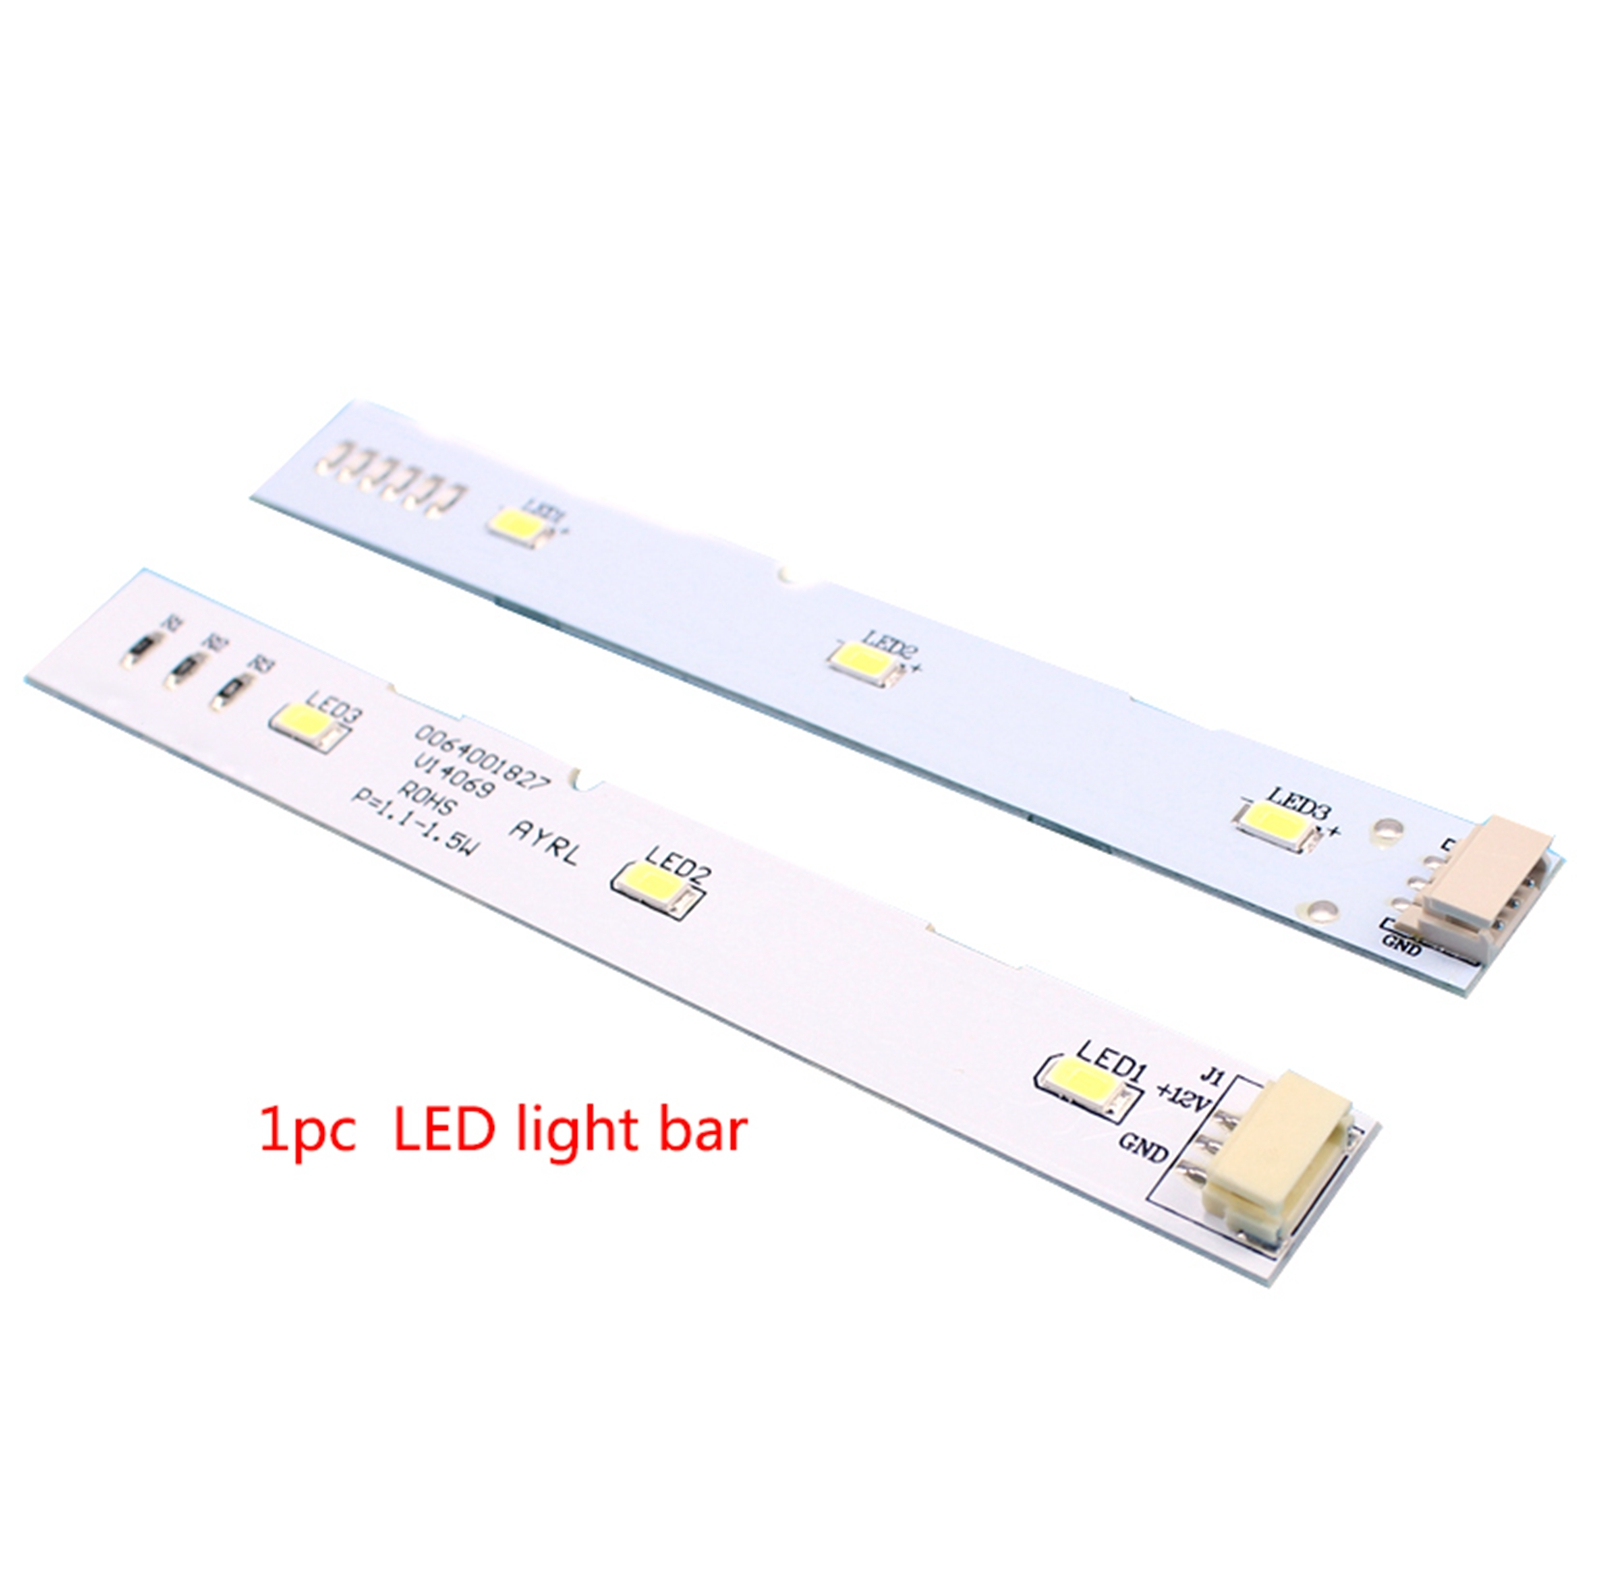 LED Backlight Strip Lamp For Haier BCD-575WDBI 0064001827 Front-door Refrigerator LED Lamp Bar Accessories